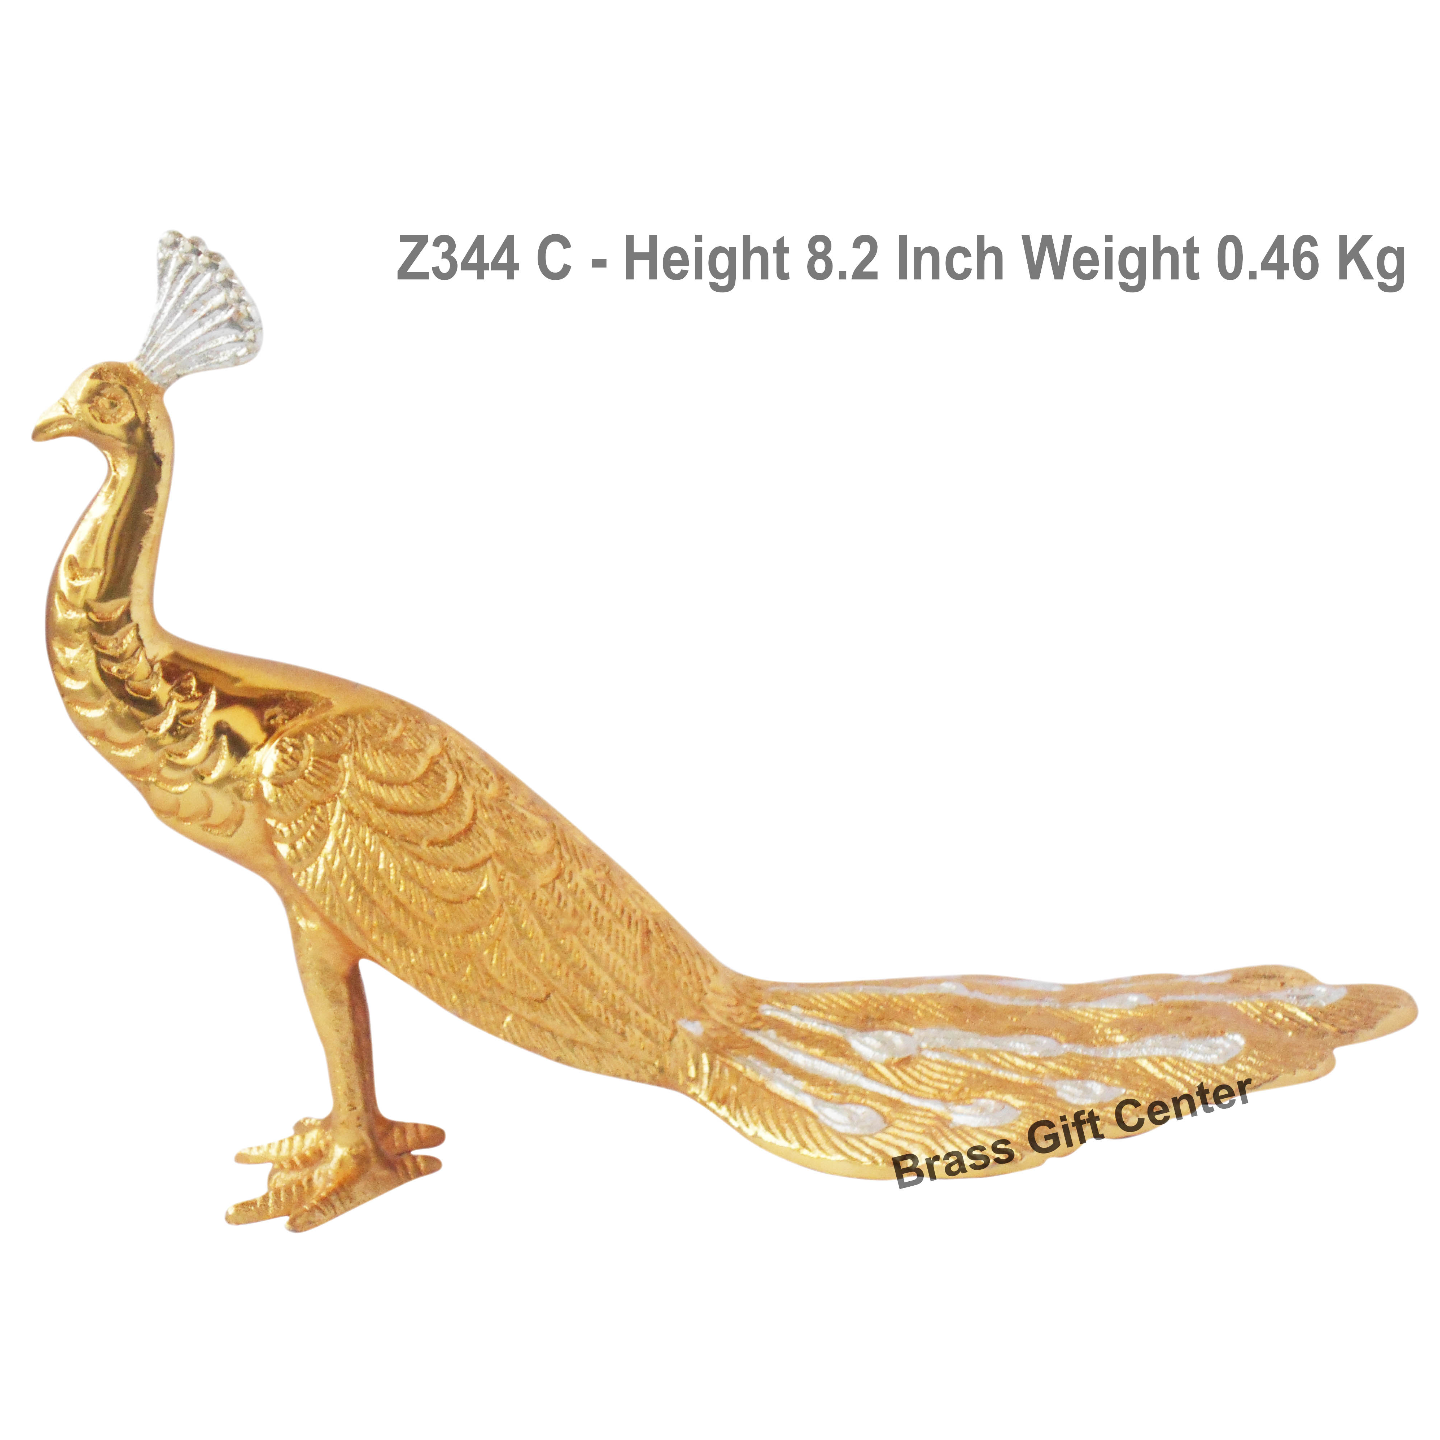 Aluminium Peacock With Gold And Silver Finish - 11.6*5*8.2 Inch (Z344 C)